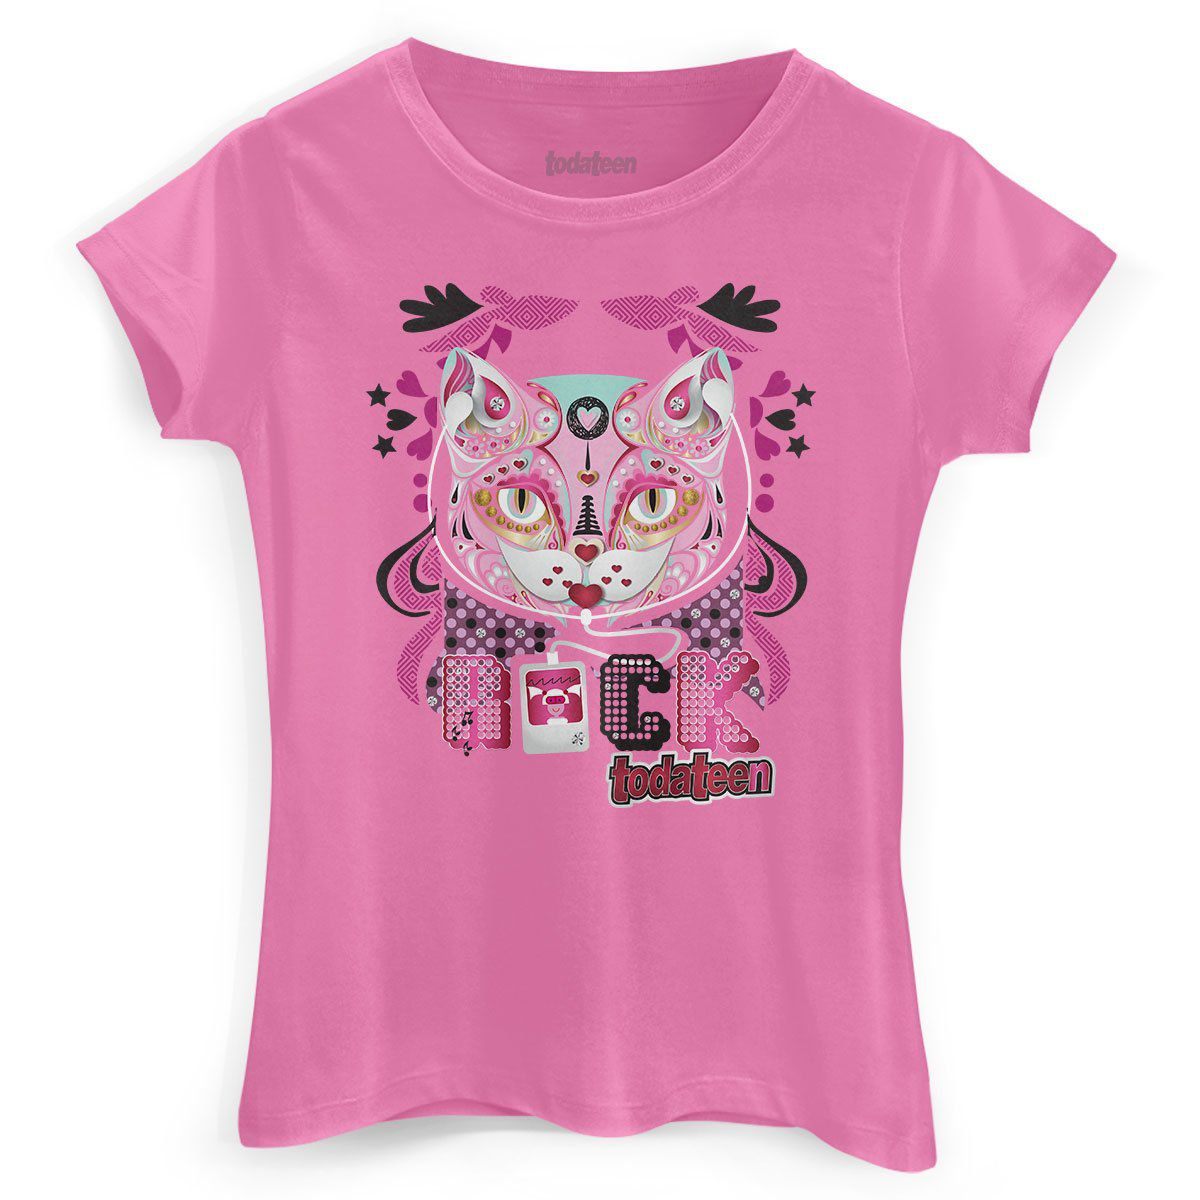 Camiseta Feminina TodaTeen Egyptian Cat  - bandUP Store Marketplace